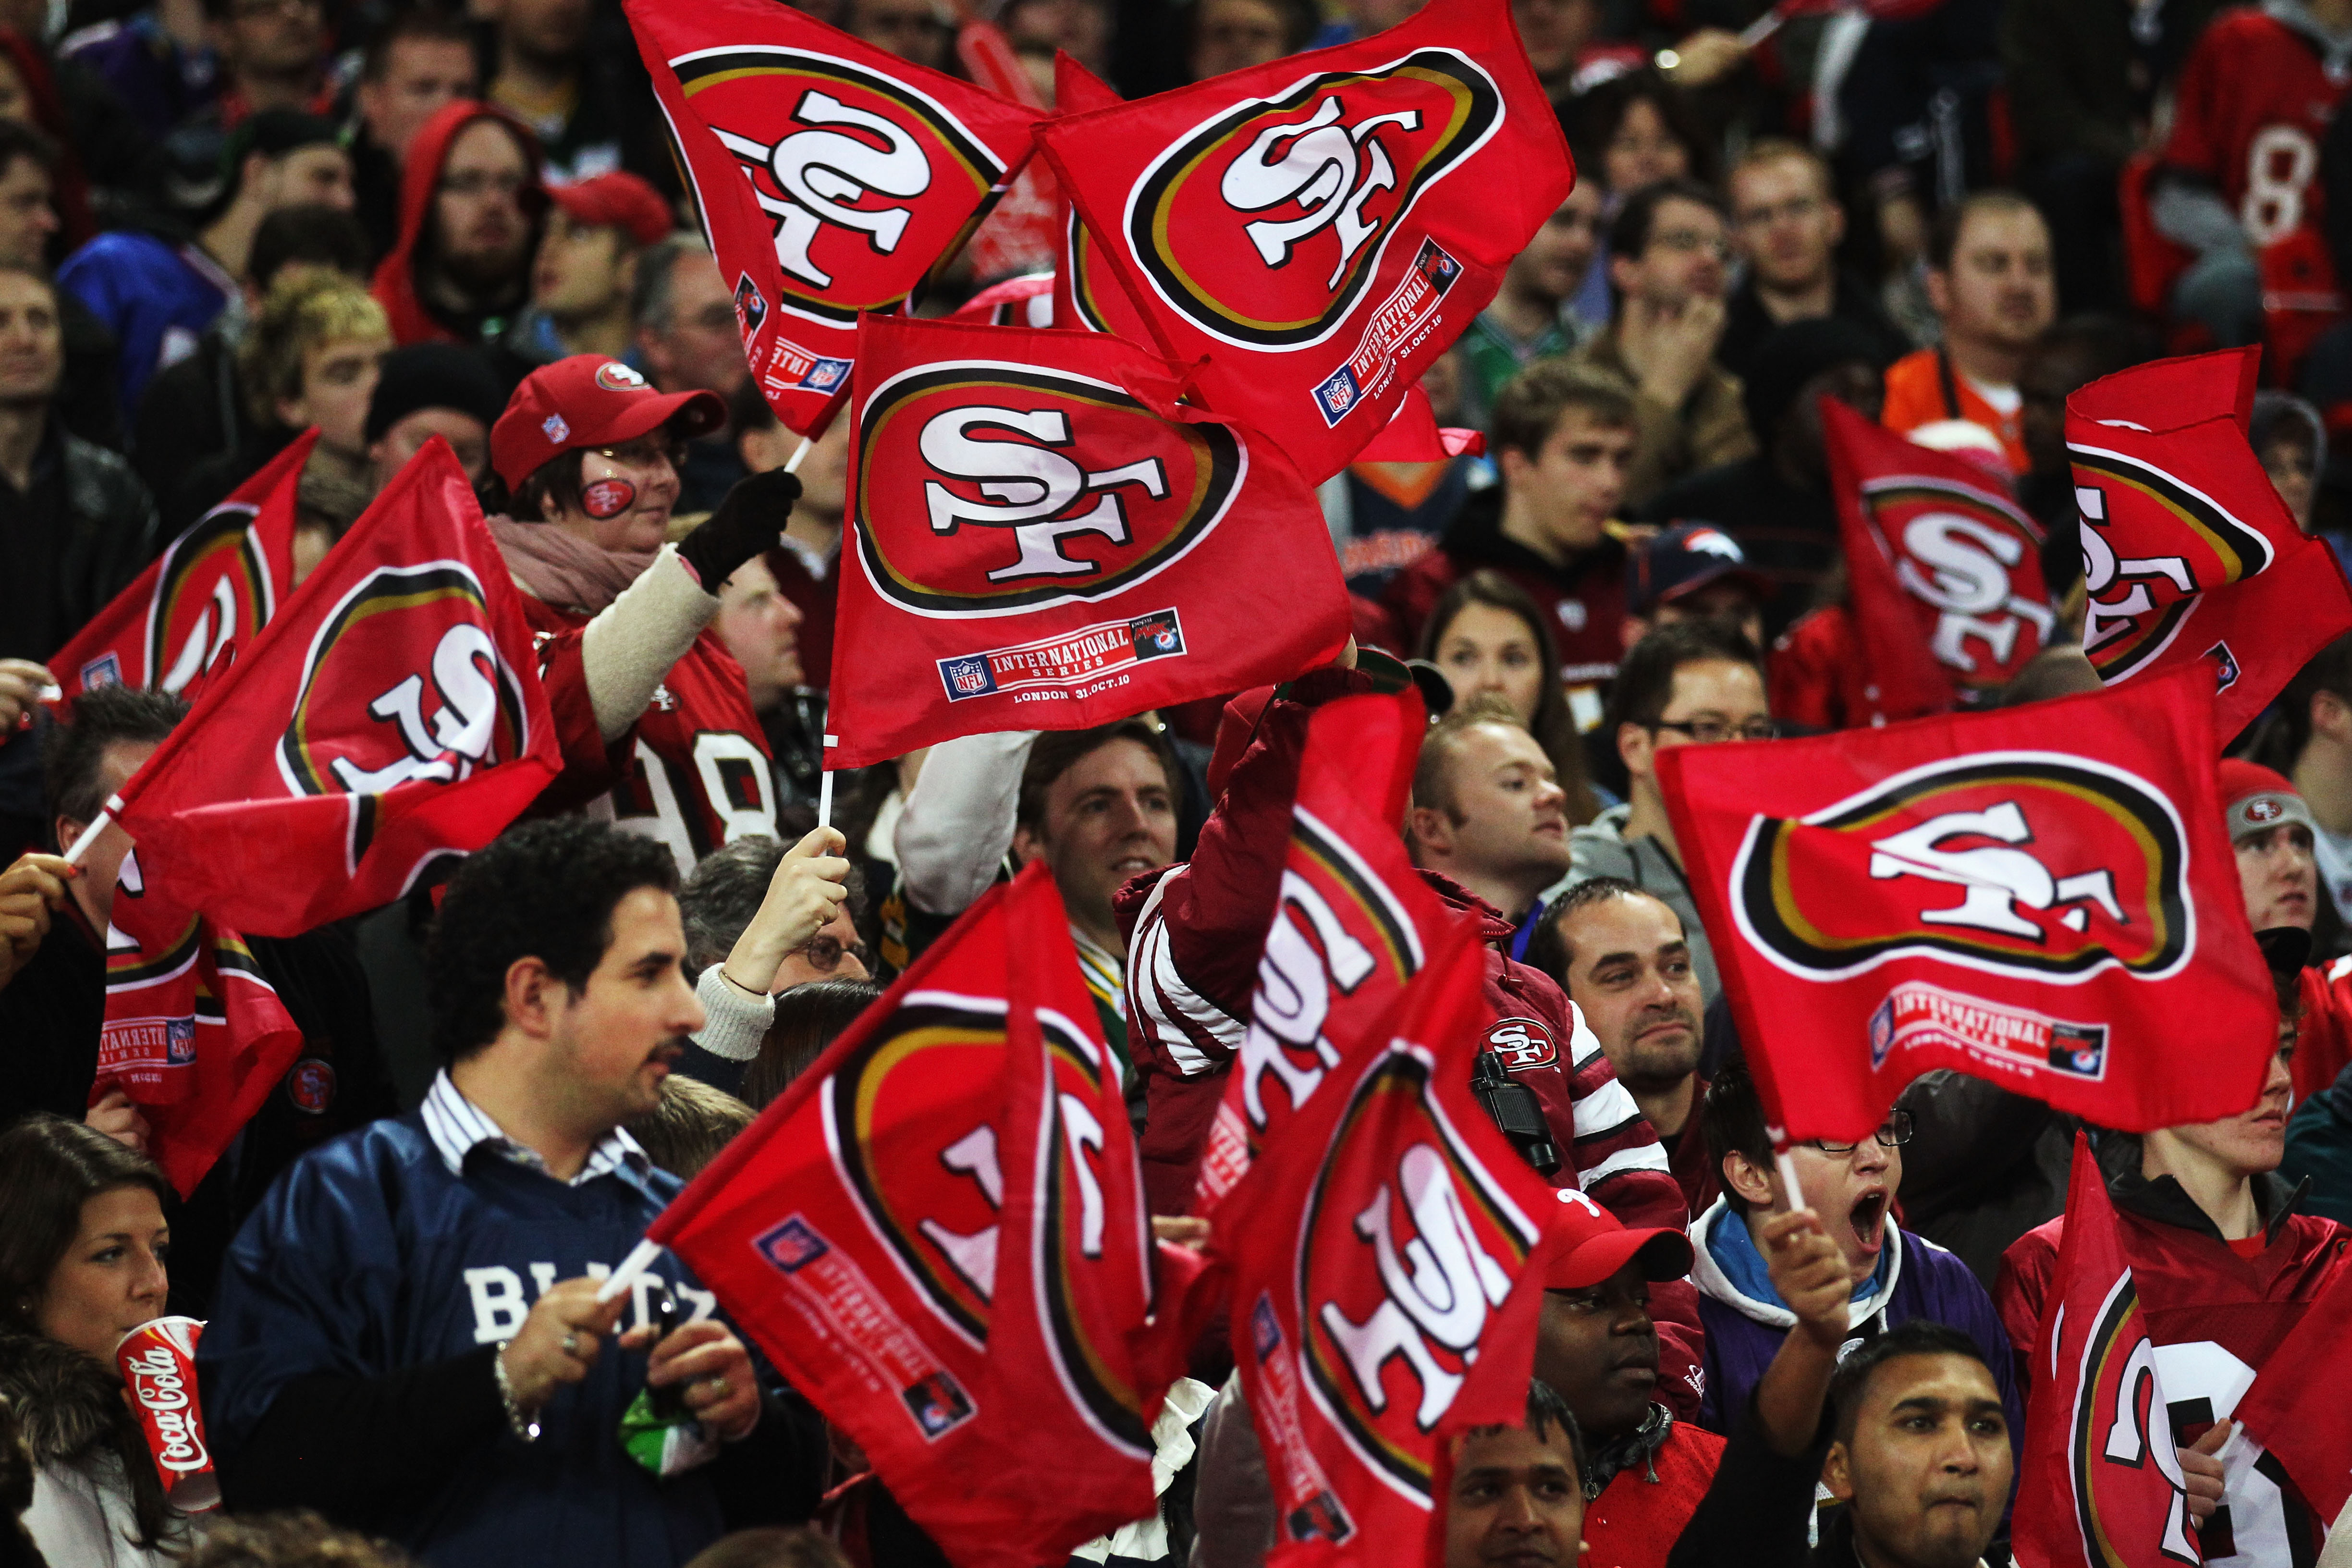 c61f4d8a8 San Francisco 49ers  Top 5 Guys Niners Fans Should Follow on Twitter ...